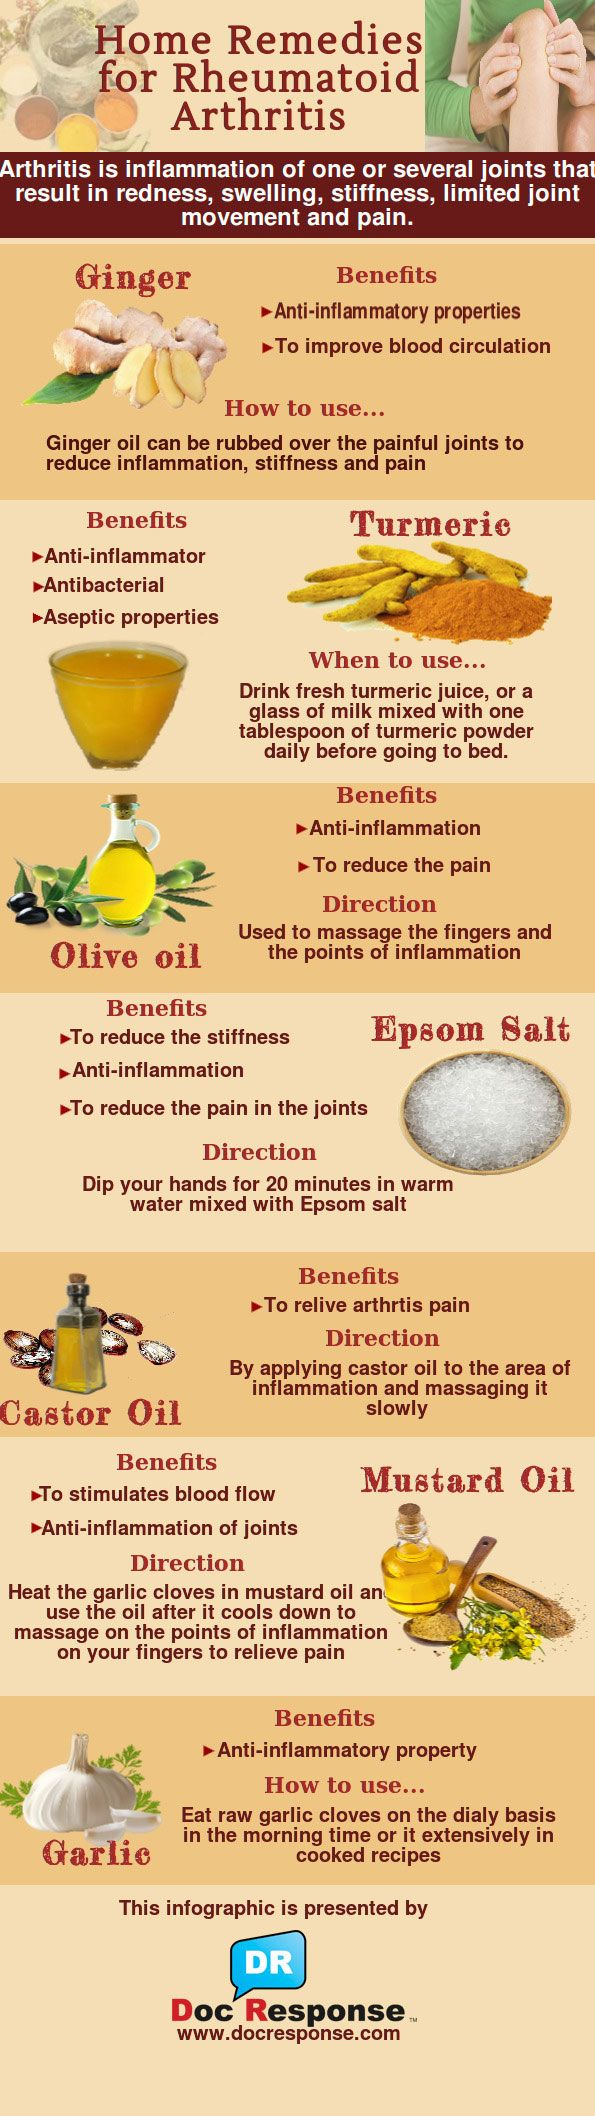 Home Remedies For Rheumatoid Arthritis Infographic